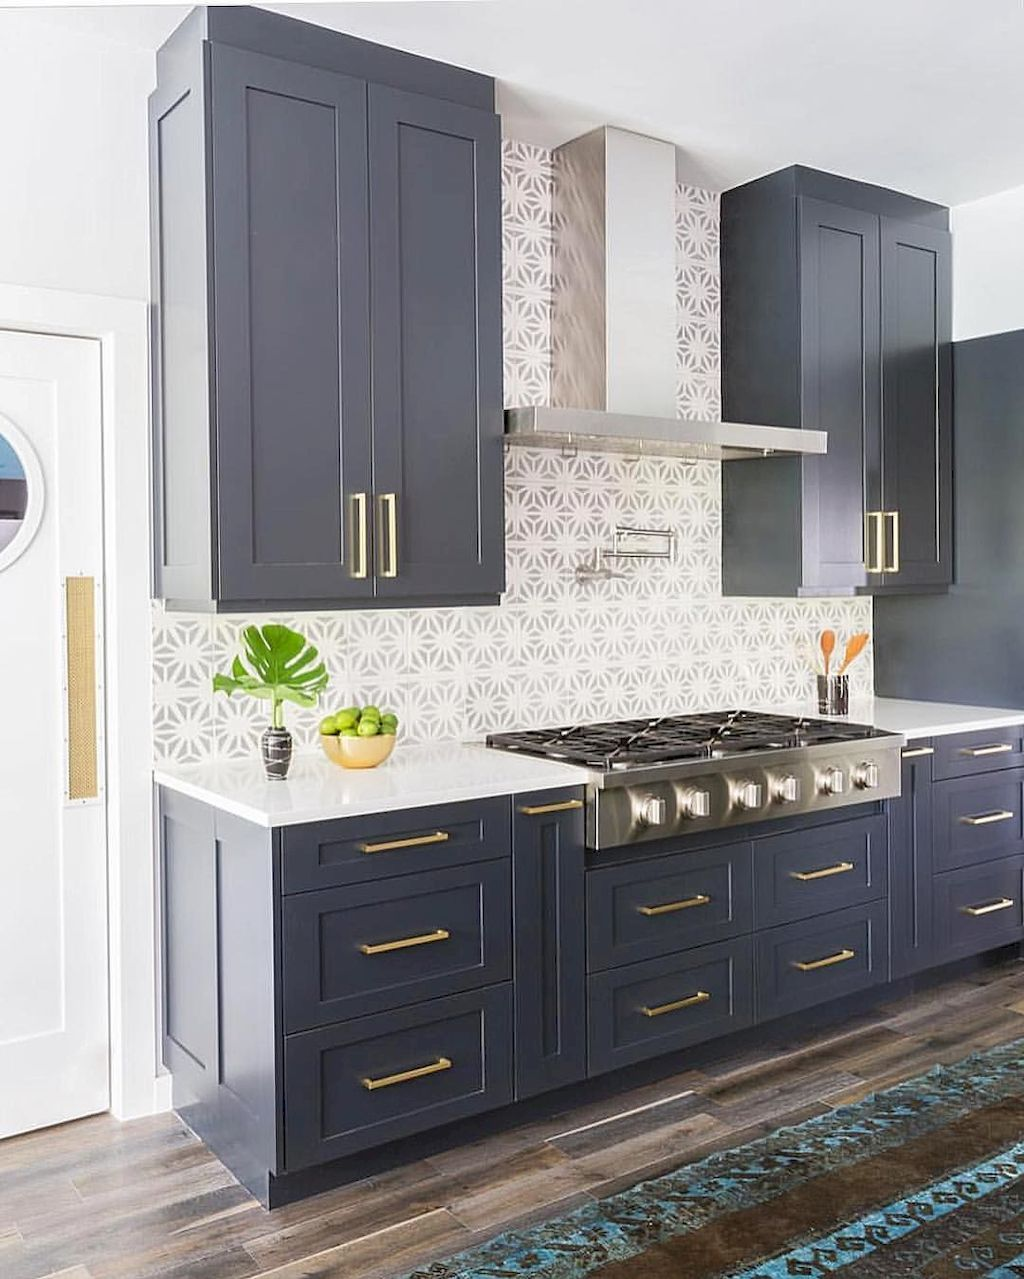 75 Gray Kitchen Cabinet Decor Ideas #graykitchencabinets